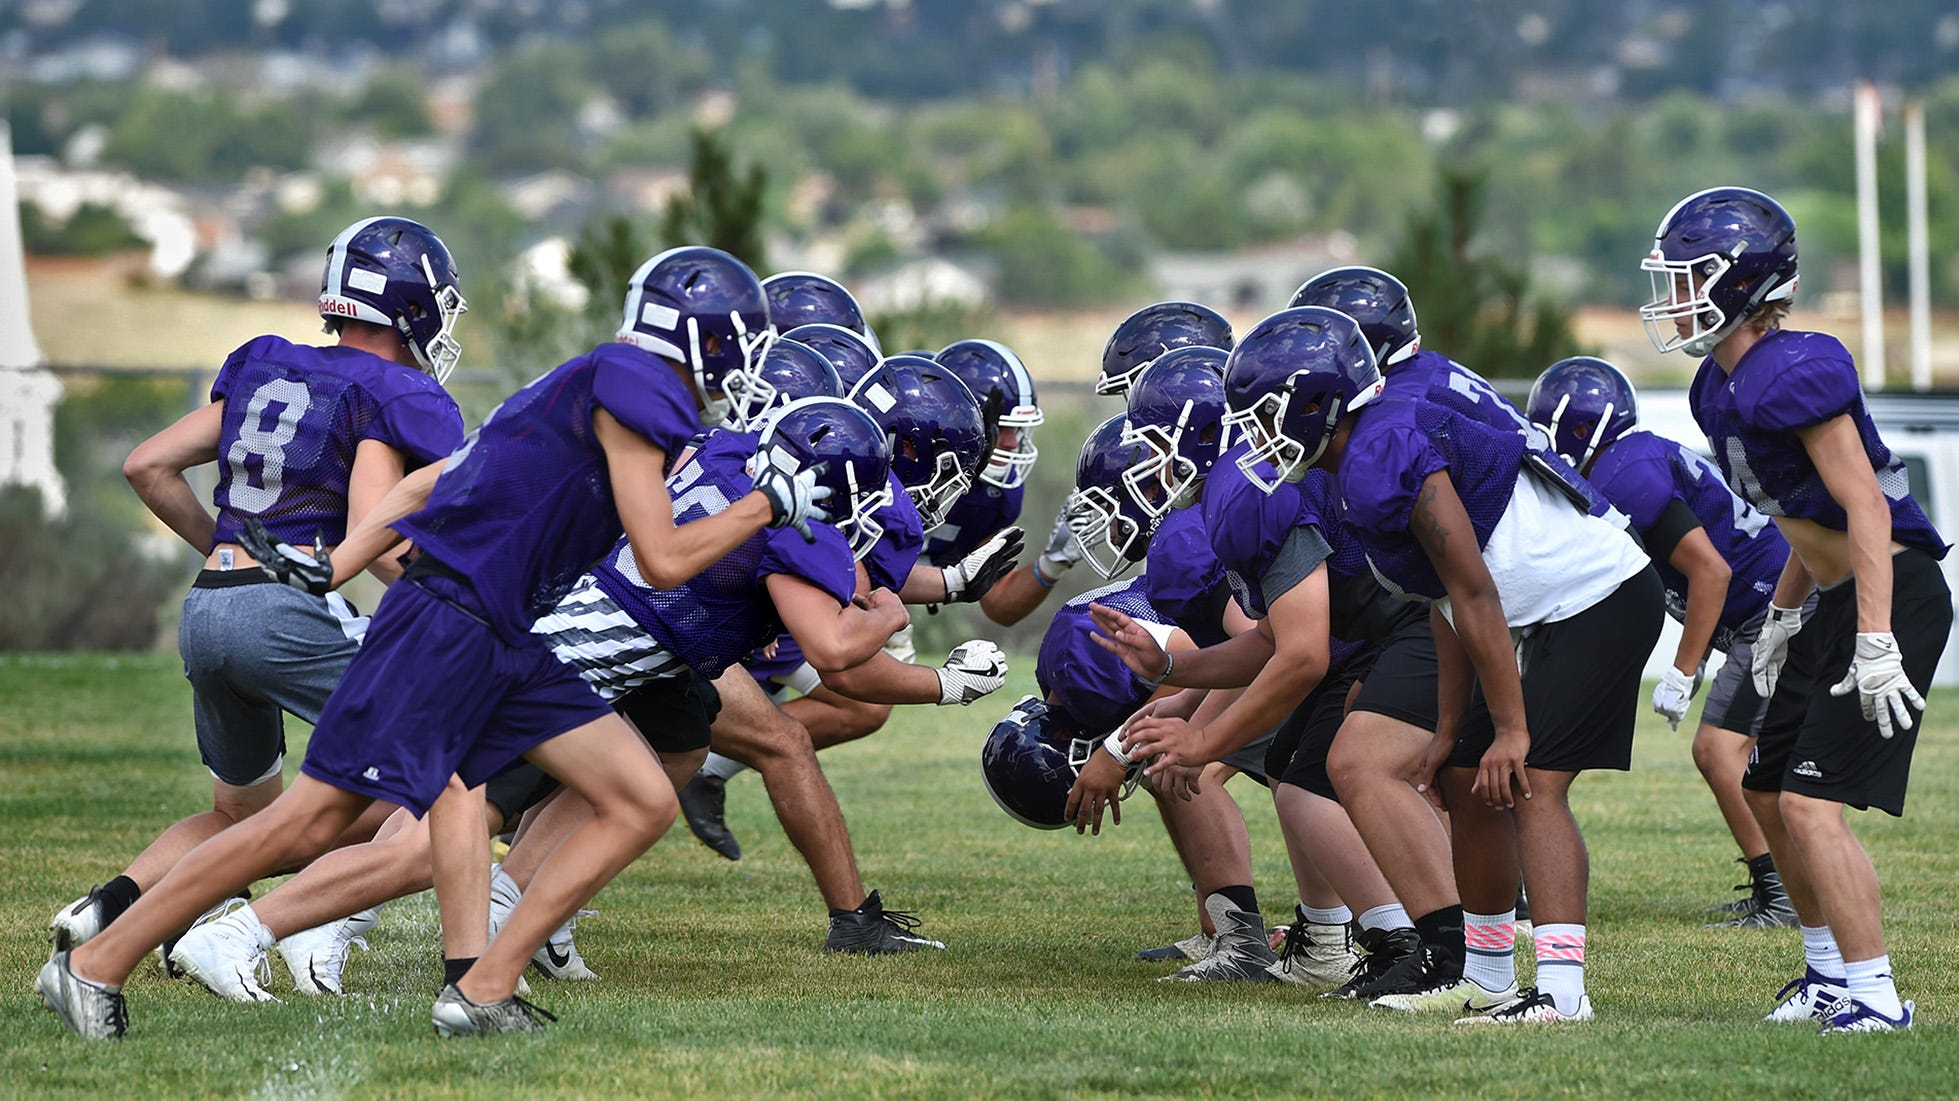 The Spanish Springs football varsity team runs through plays during practice on the school practice field on August 15, 2018.